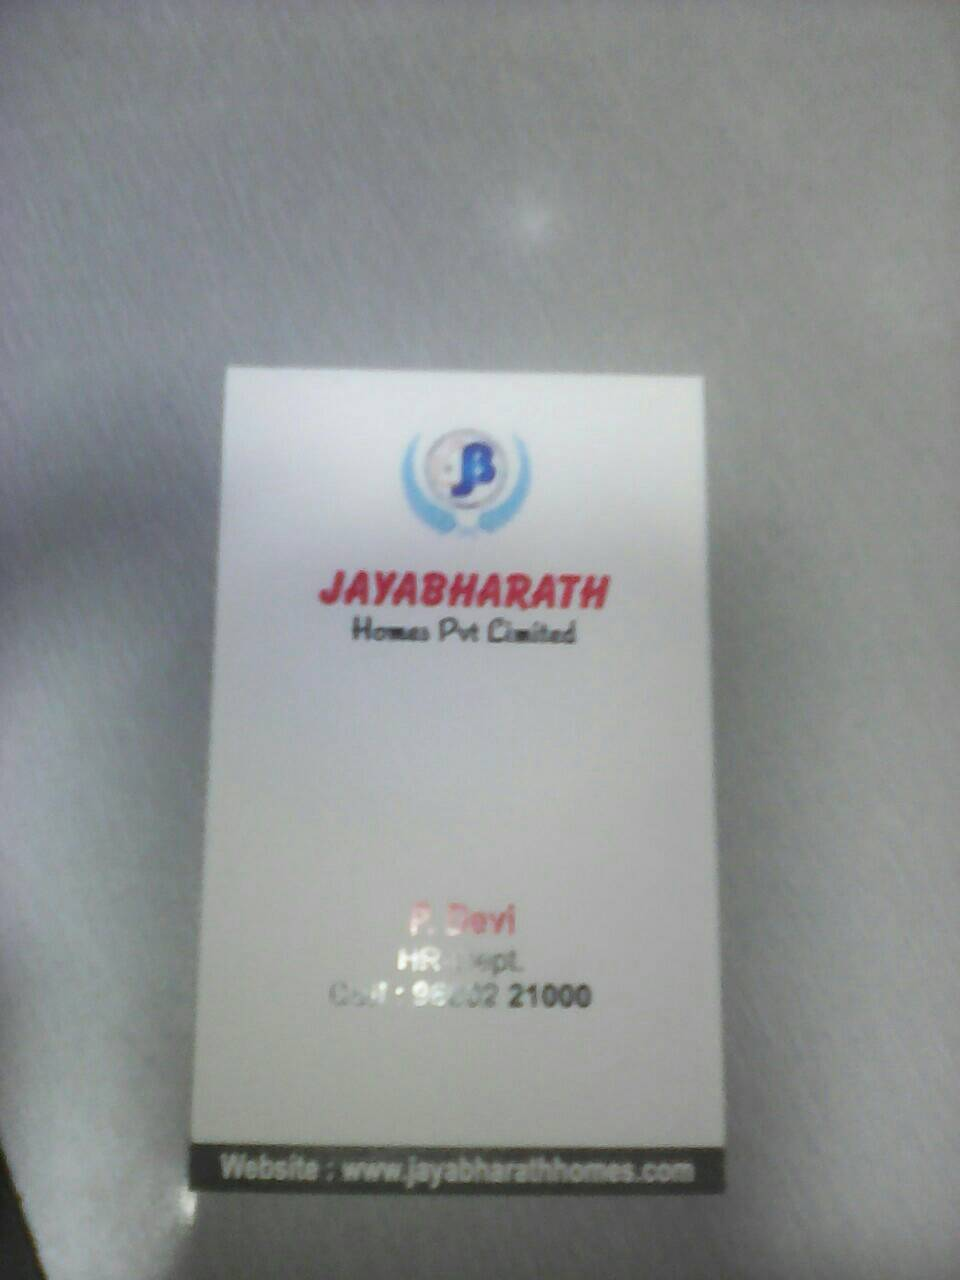 Jaya Bharath Homes Private Limited